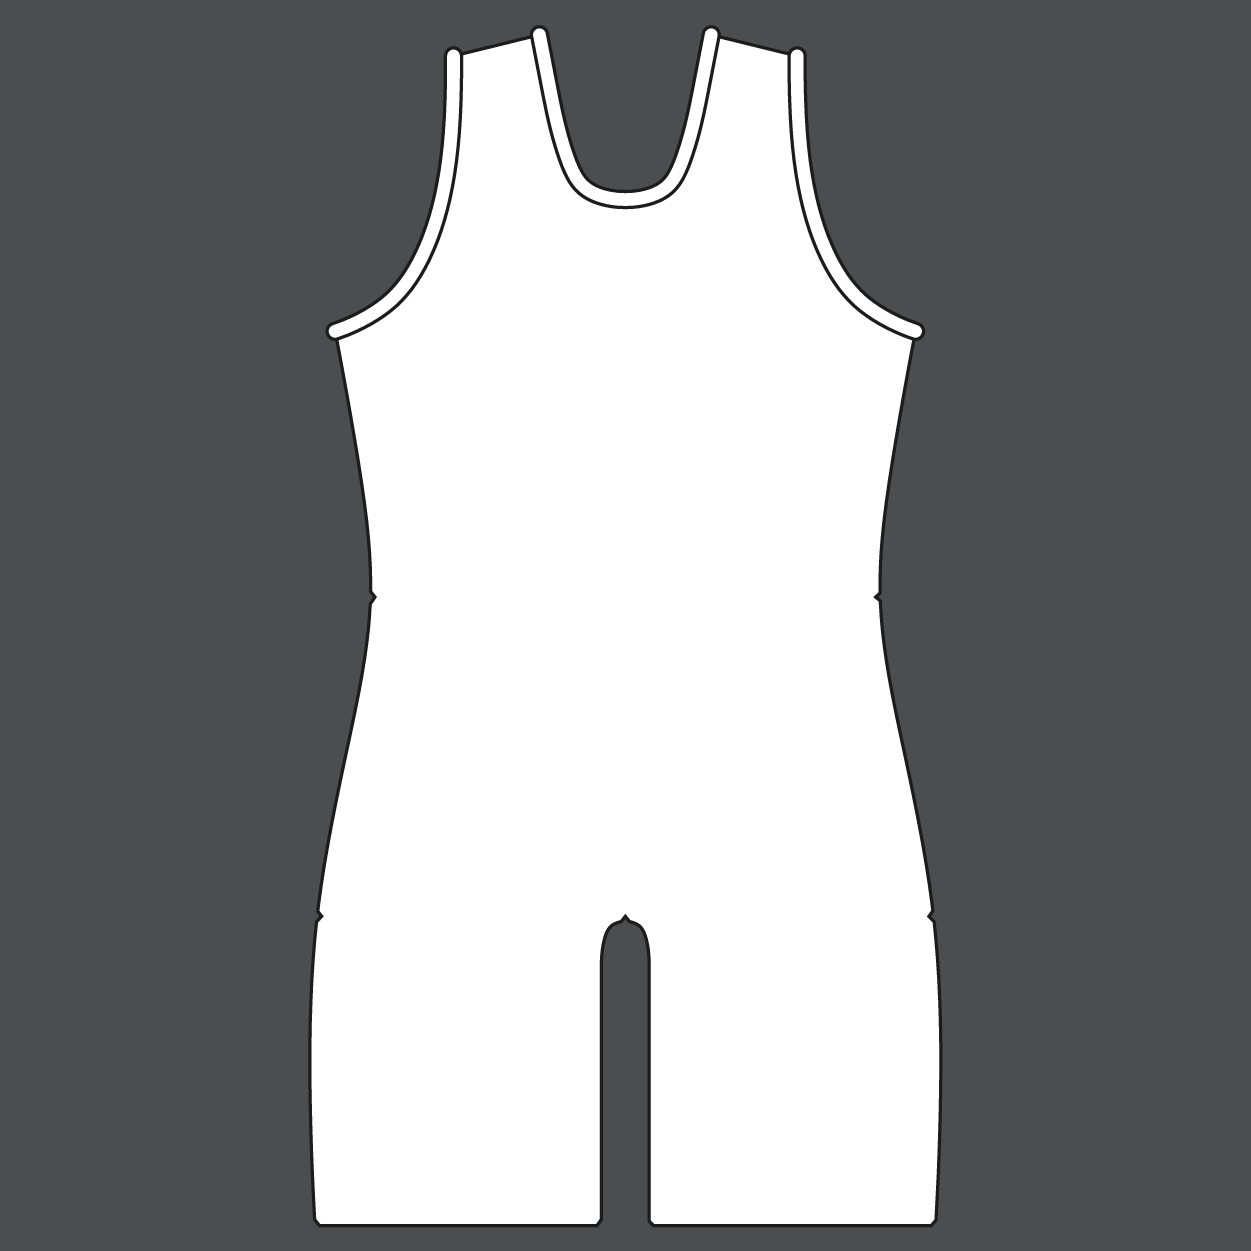 Women's Wrestling Singlet - Retail Price: $74.99  Team Price 12-23: $59.99 Team Price 24+: $54.99 Team Price 50+: Contact your Emblem Rep for a custom quote Fabric: LycraSizes: YXS, YS, YM, YL, XS, S, M, L, XL, XXL, XXXLOptions: N/A